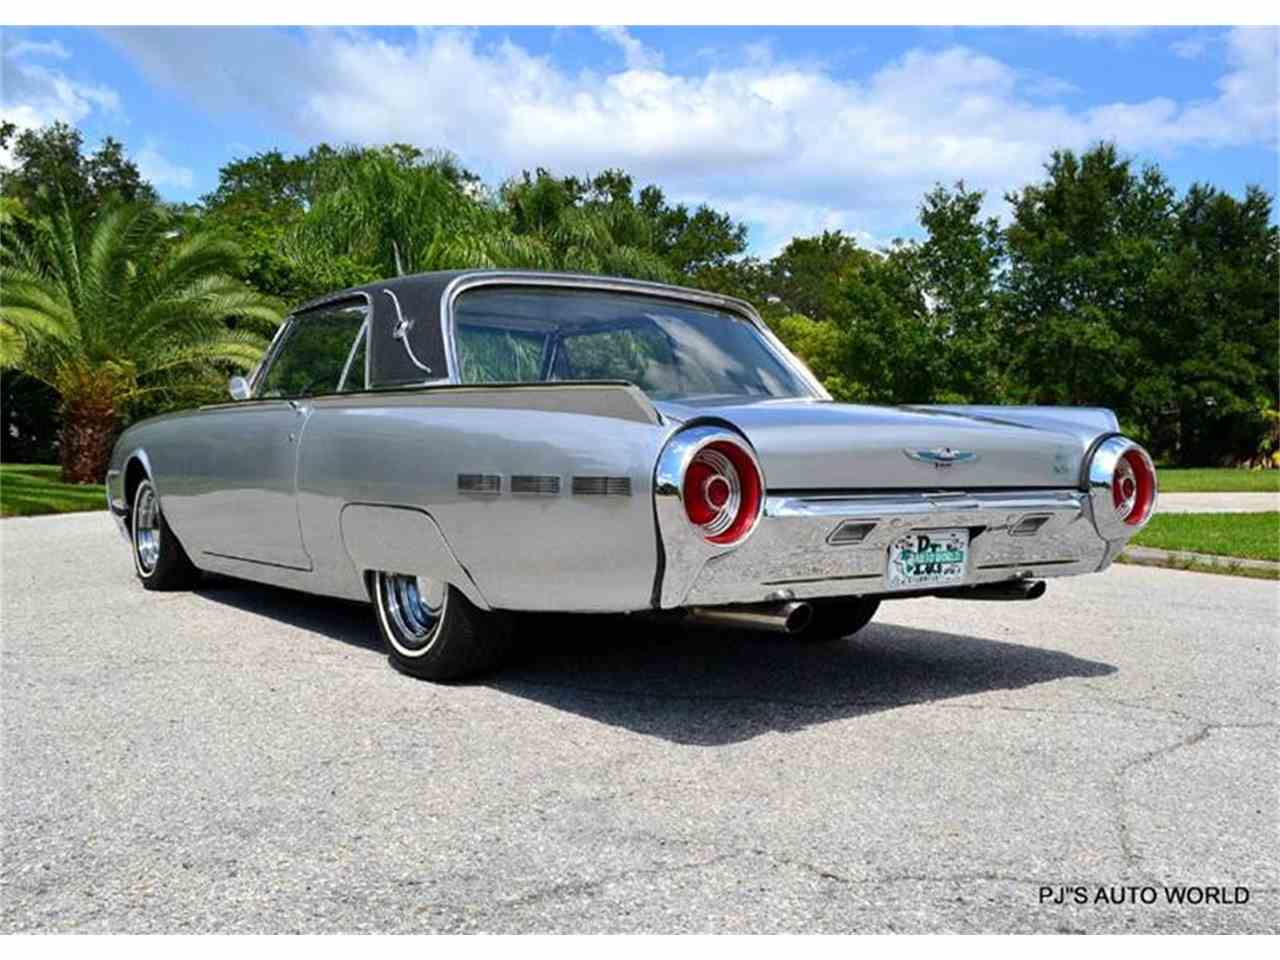 Large Picture of 1962 Ford Thunderbird located in Clearwater Florida - $21,900.00 Offered by PJ's Auto World - J087